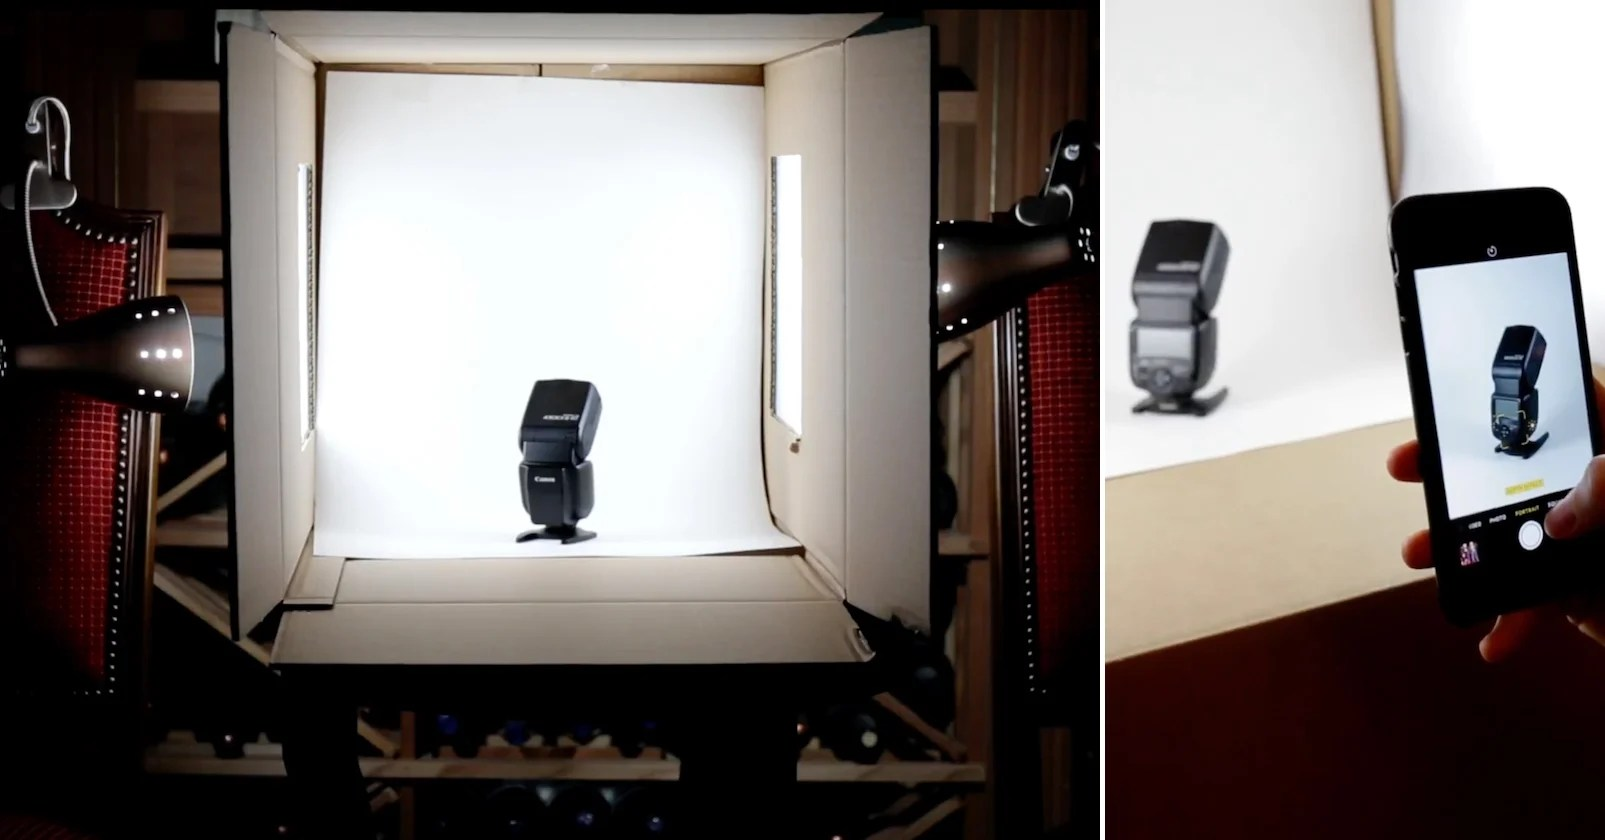 How To Build A Great Diy Lightbox For Under 50